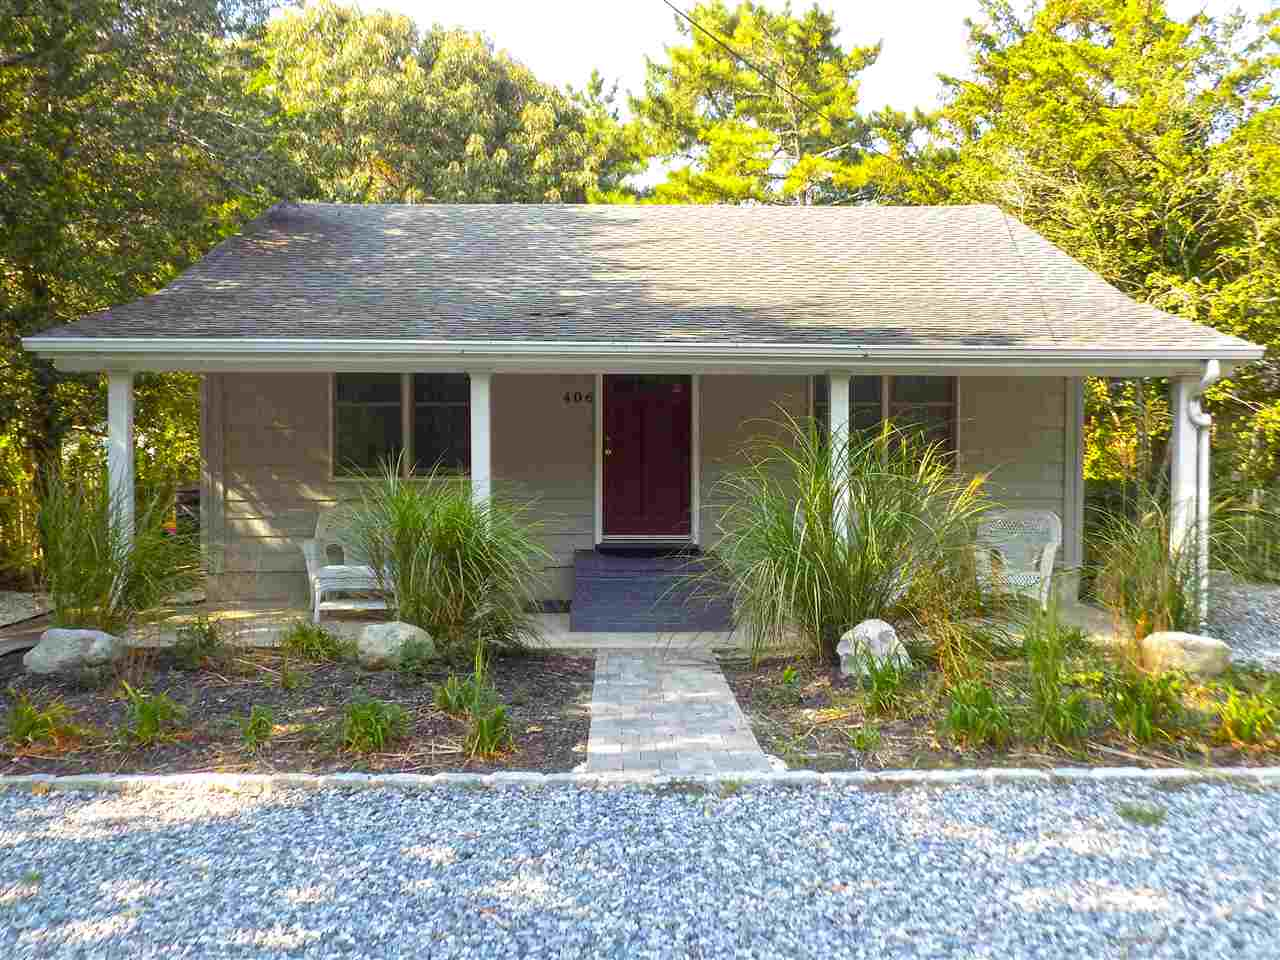 406 Alexander Avenue - Cape May Point